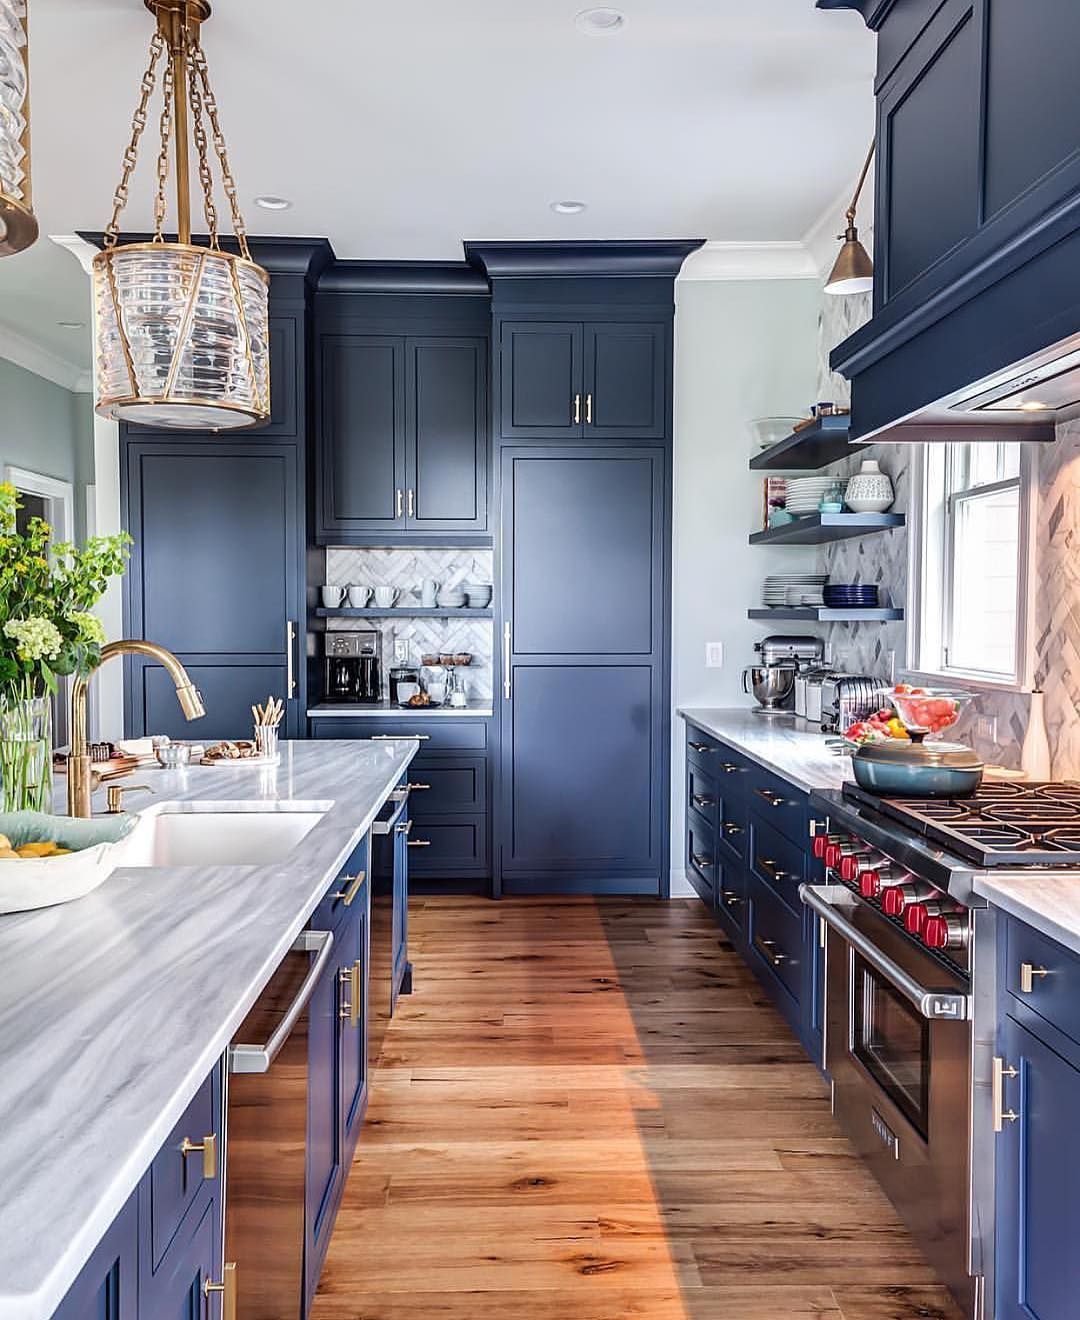 blue kitchens are everywhere what are your thoughts on this hot new trend photo by on kitchen decor blue id=51257